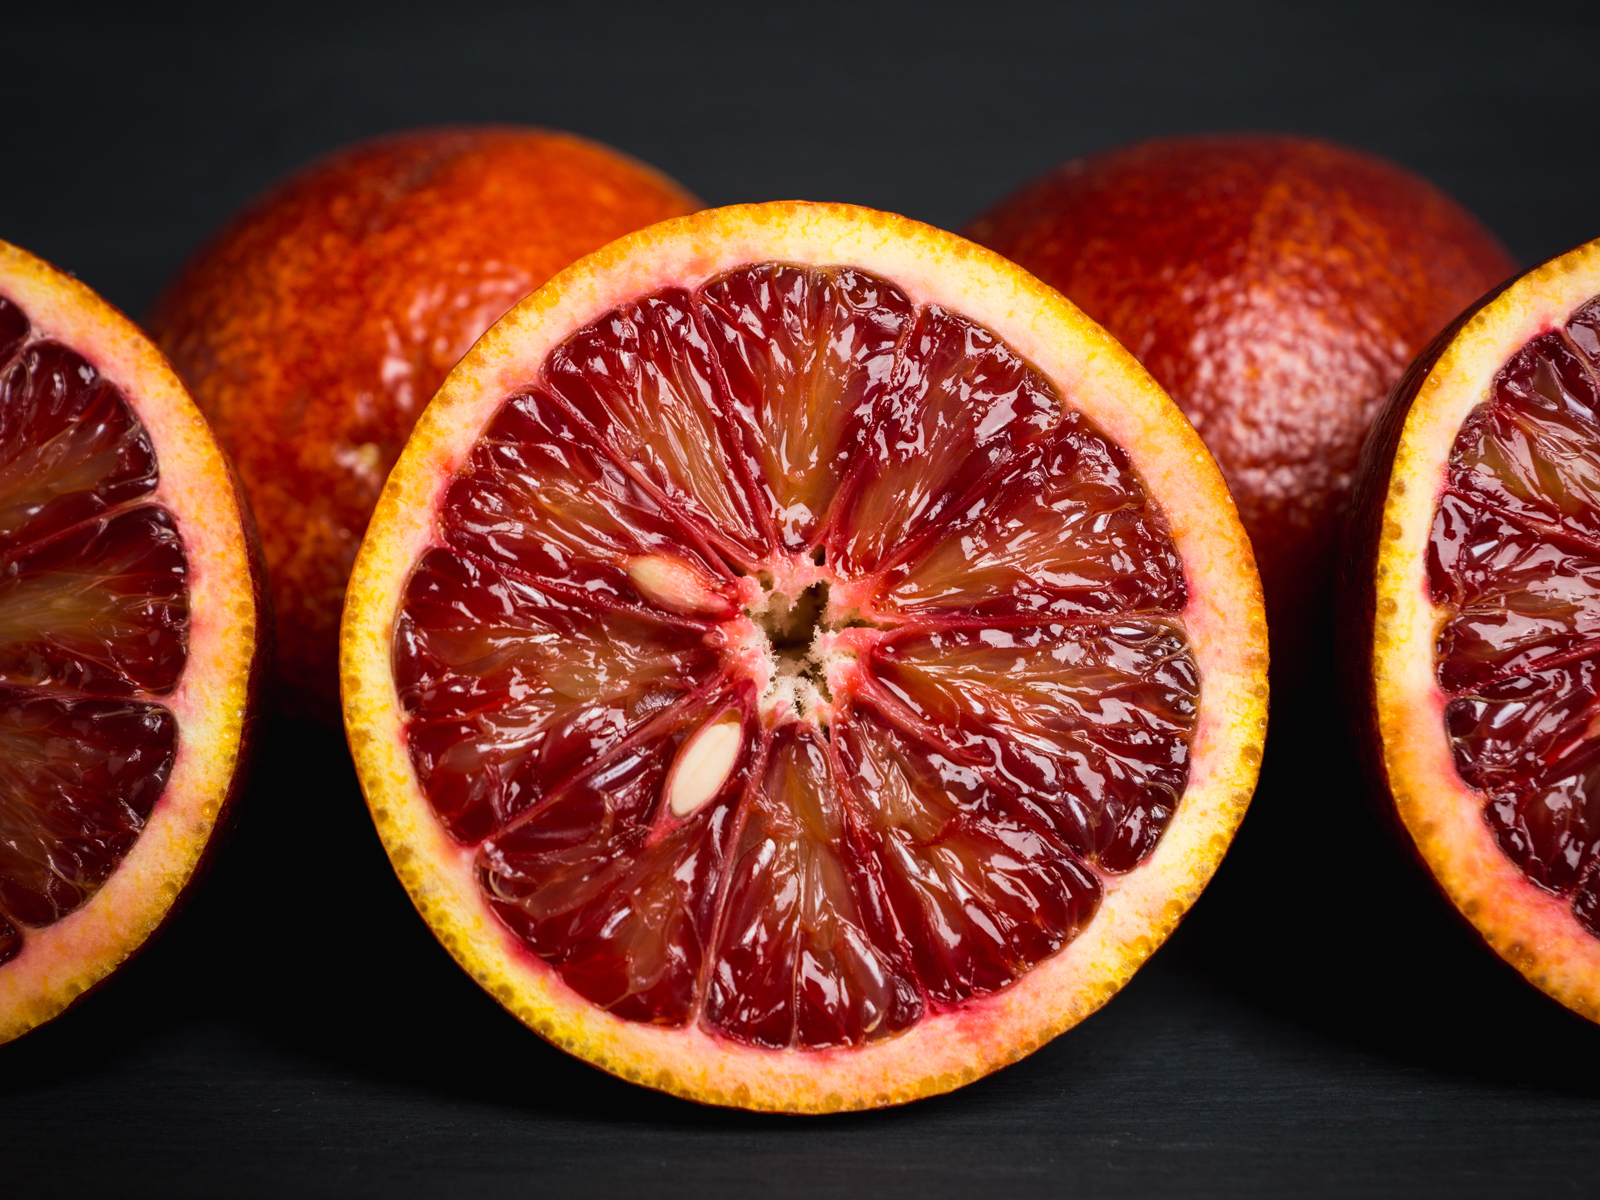 Citrus Waste Could Be Used to Make High-Fiber Bread